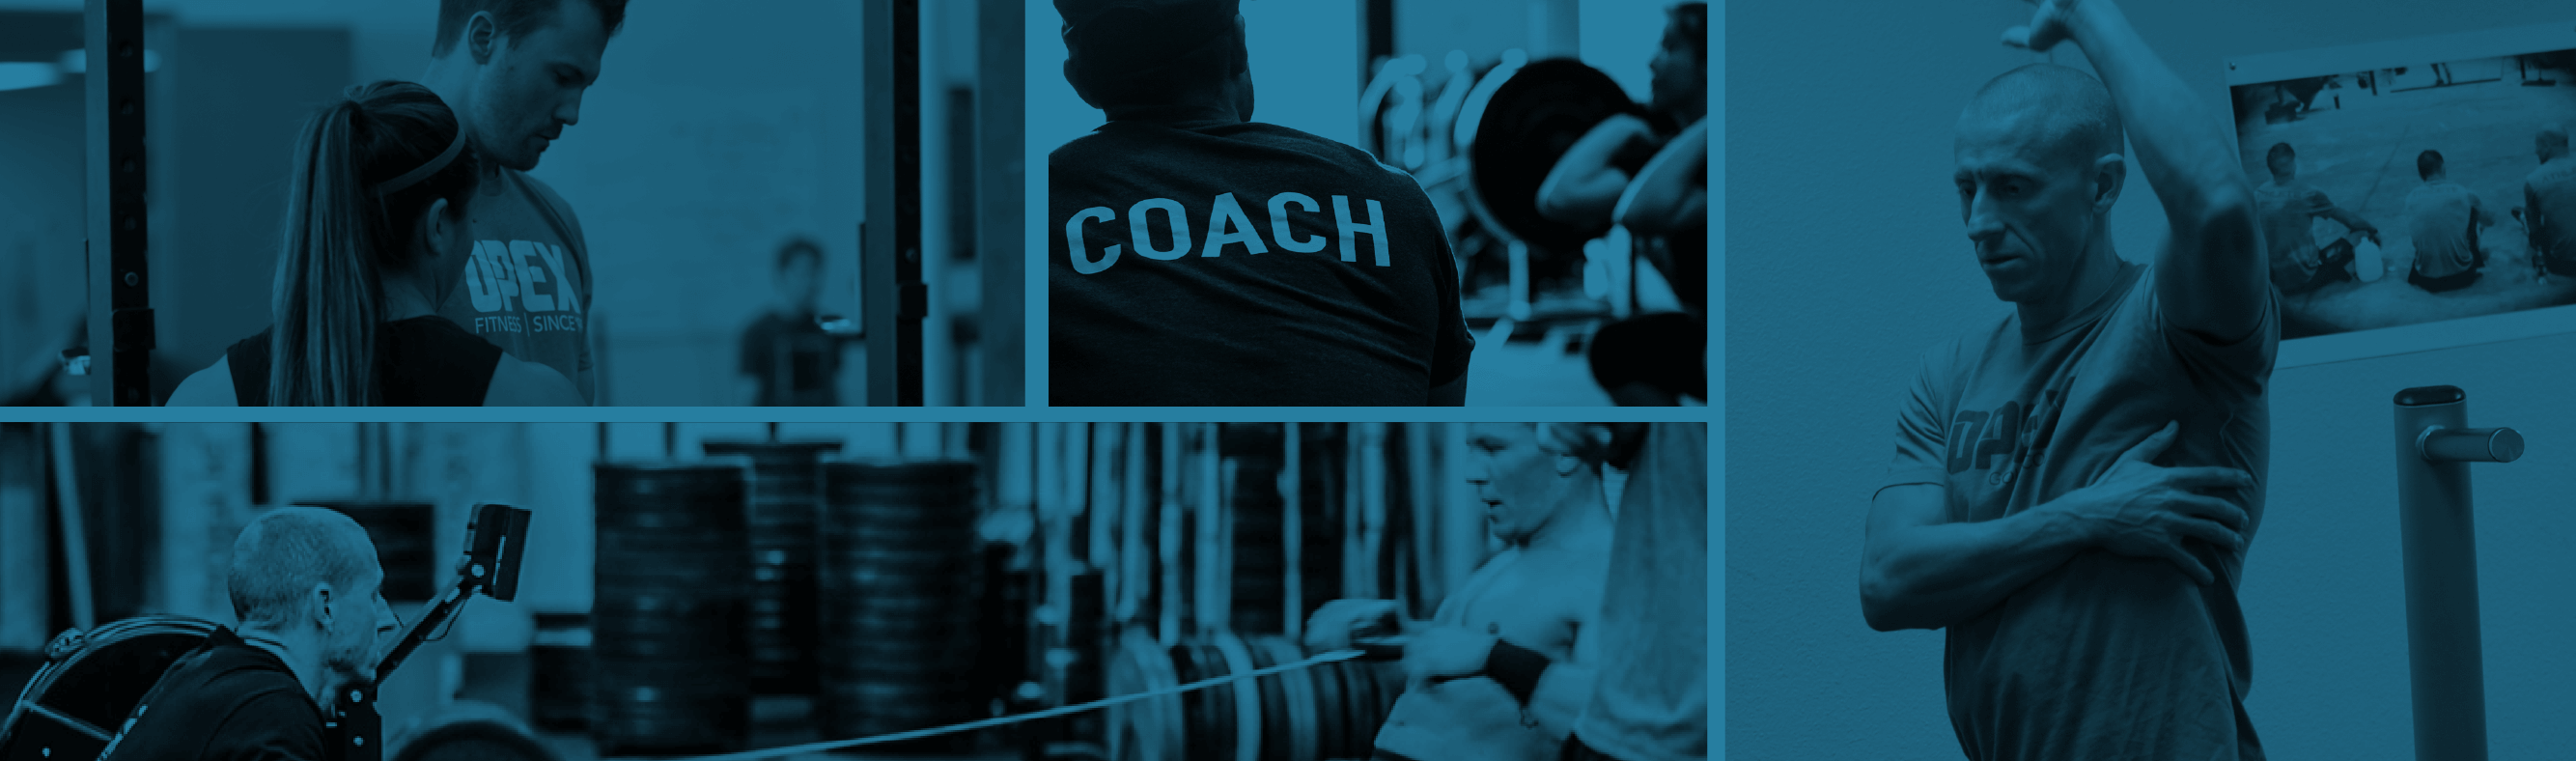 Group Fitness Instructor versus OPEX Coach: Job Fulfillment